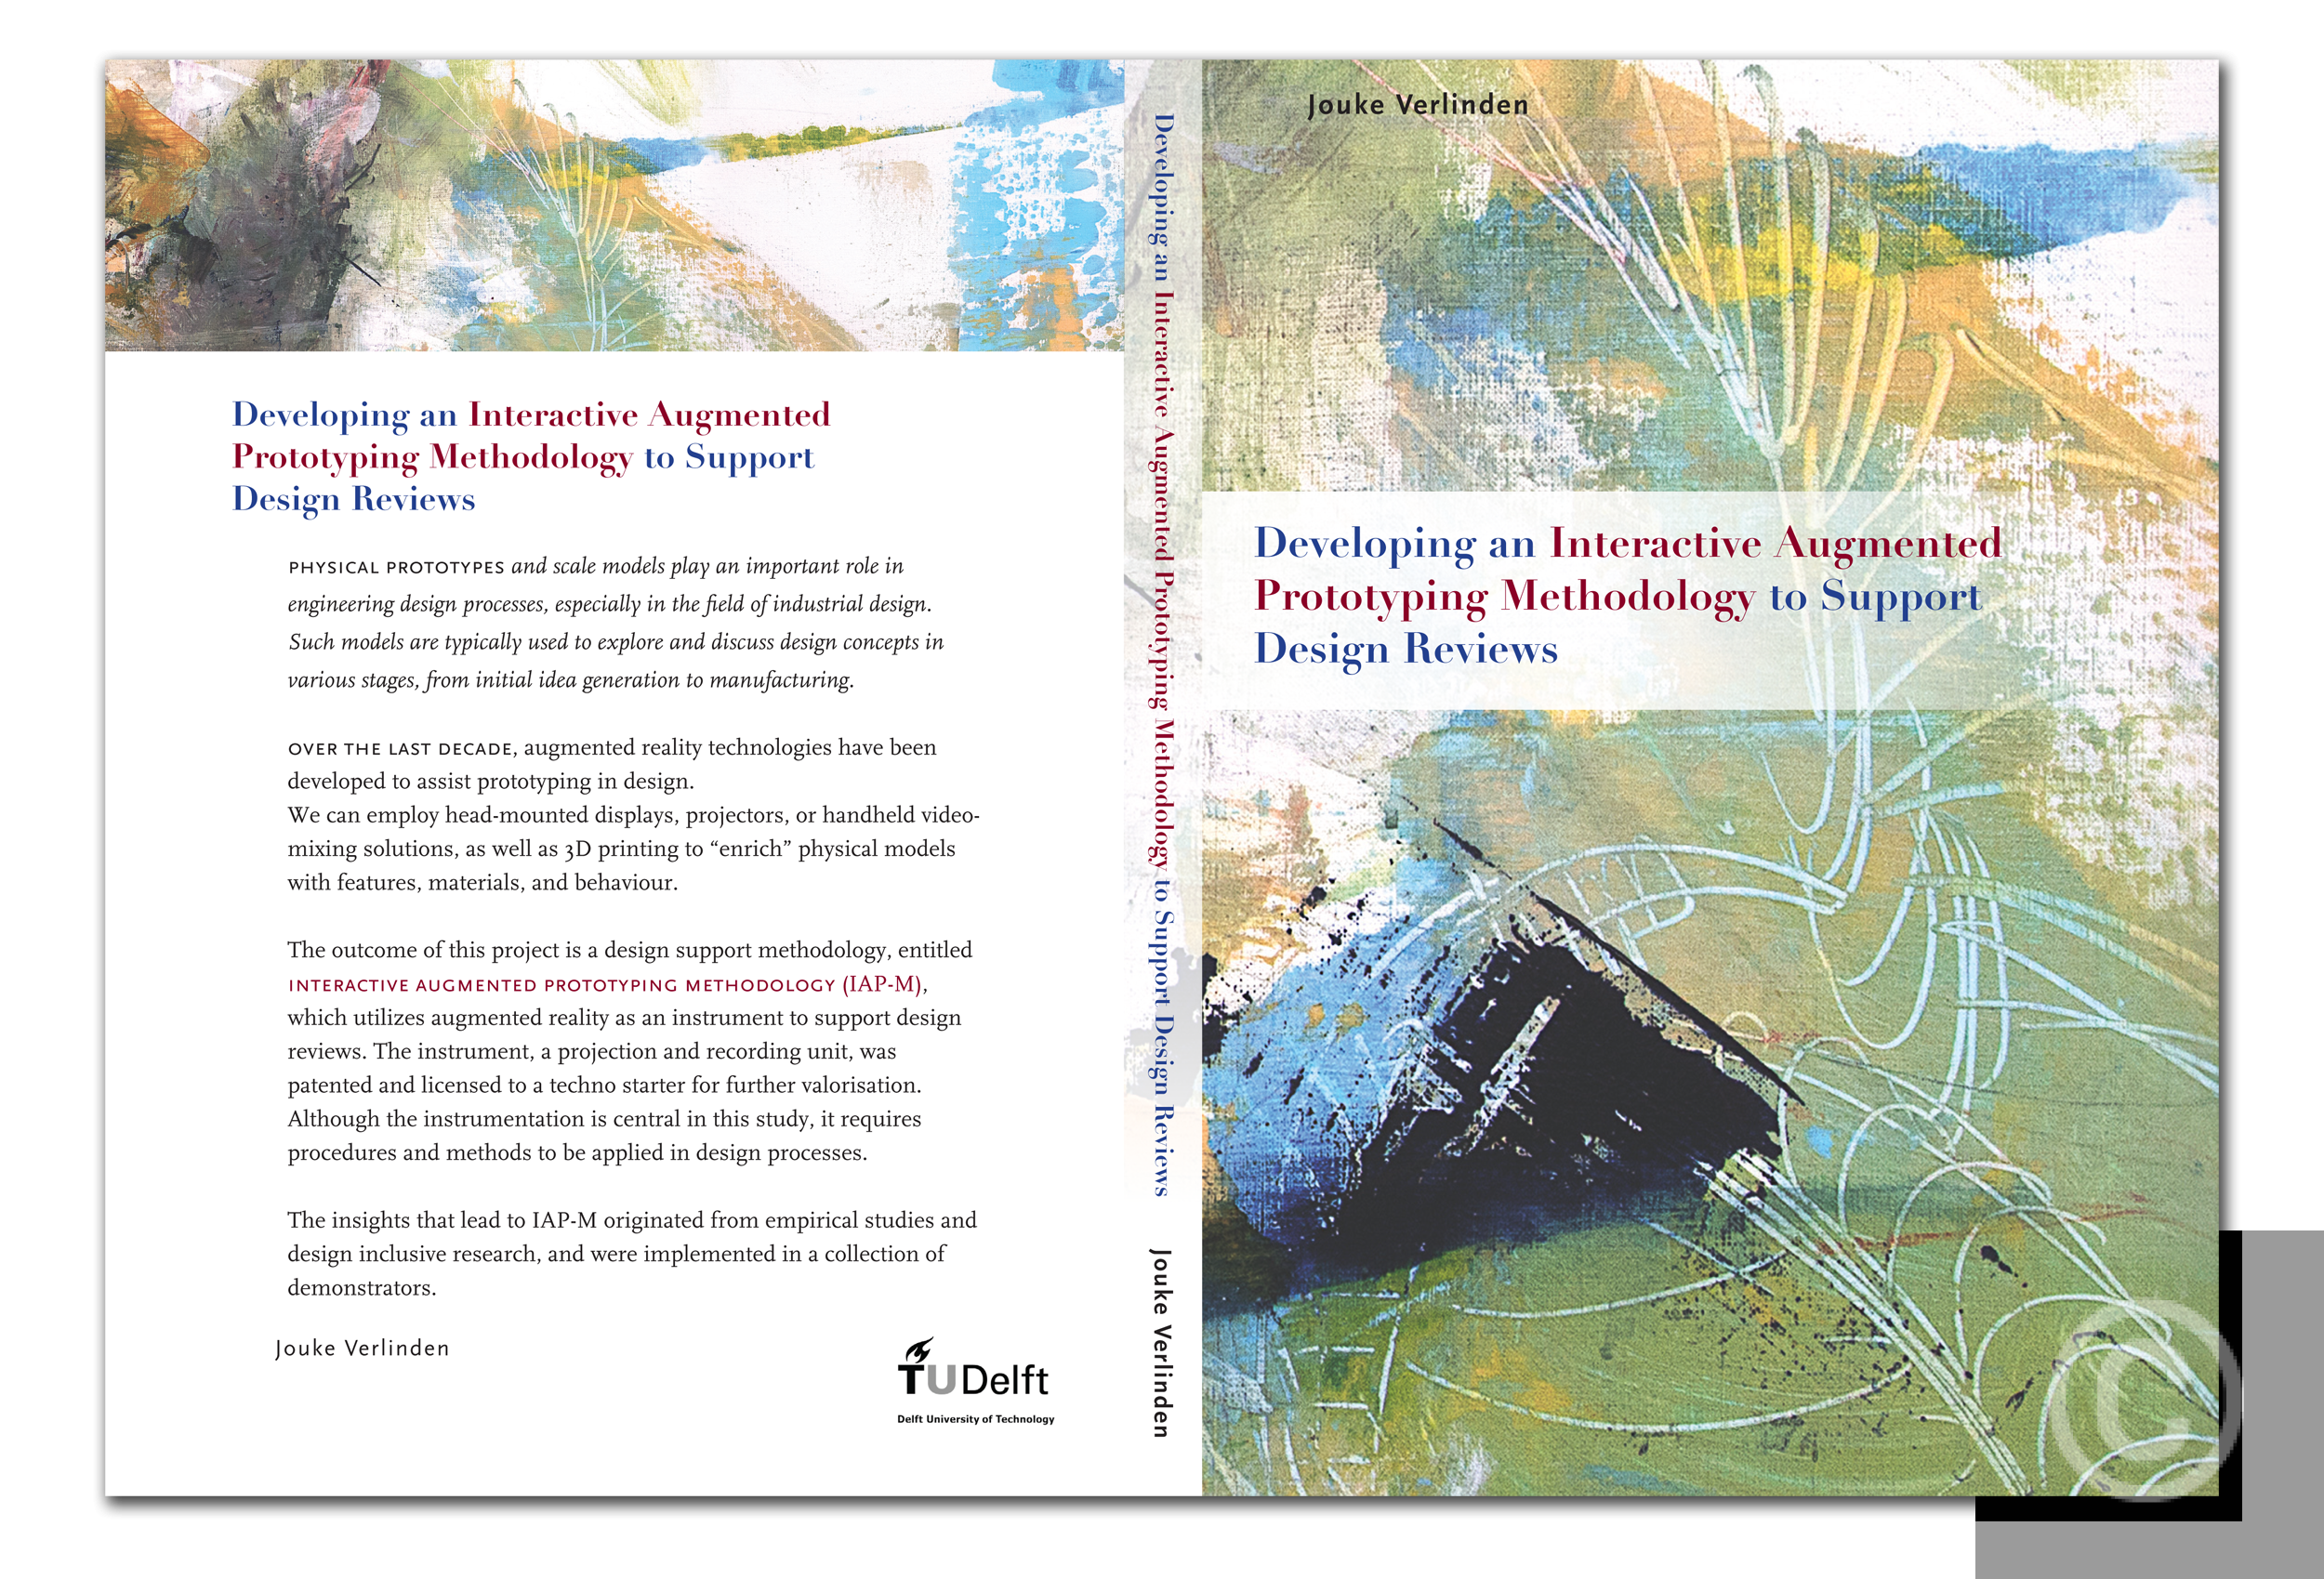 PHD Promotion Thesis Jouke Verlinen, TU Delft. November 2014 'Developing an Interactive Augmented Prototyping Methodology to Support Design Reviews' Book cover design © Prosper Jerominus, Jerome Bertrand 2014